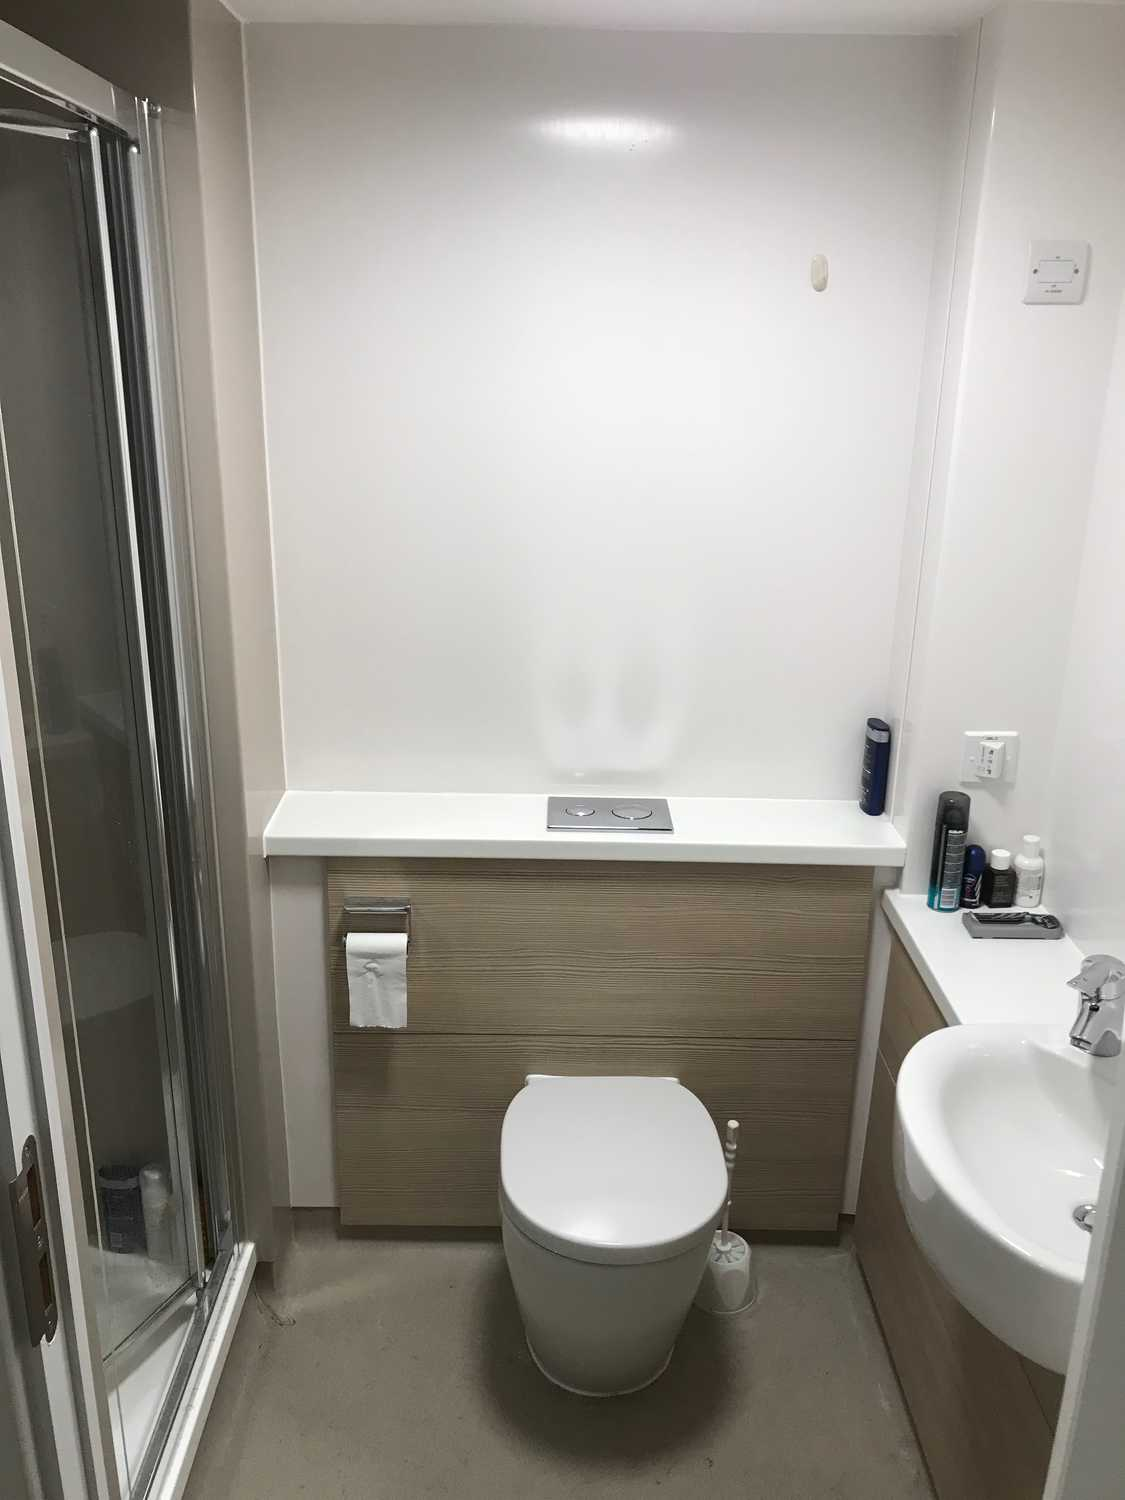 Photo of a double bed ensuite room in 1-room student hall in Kings Cross, London.